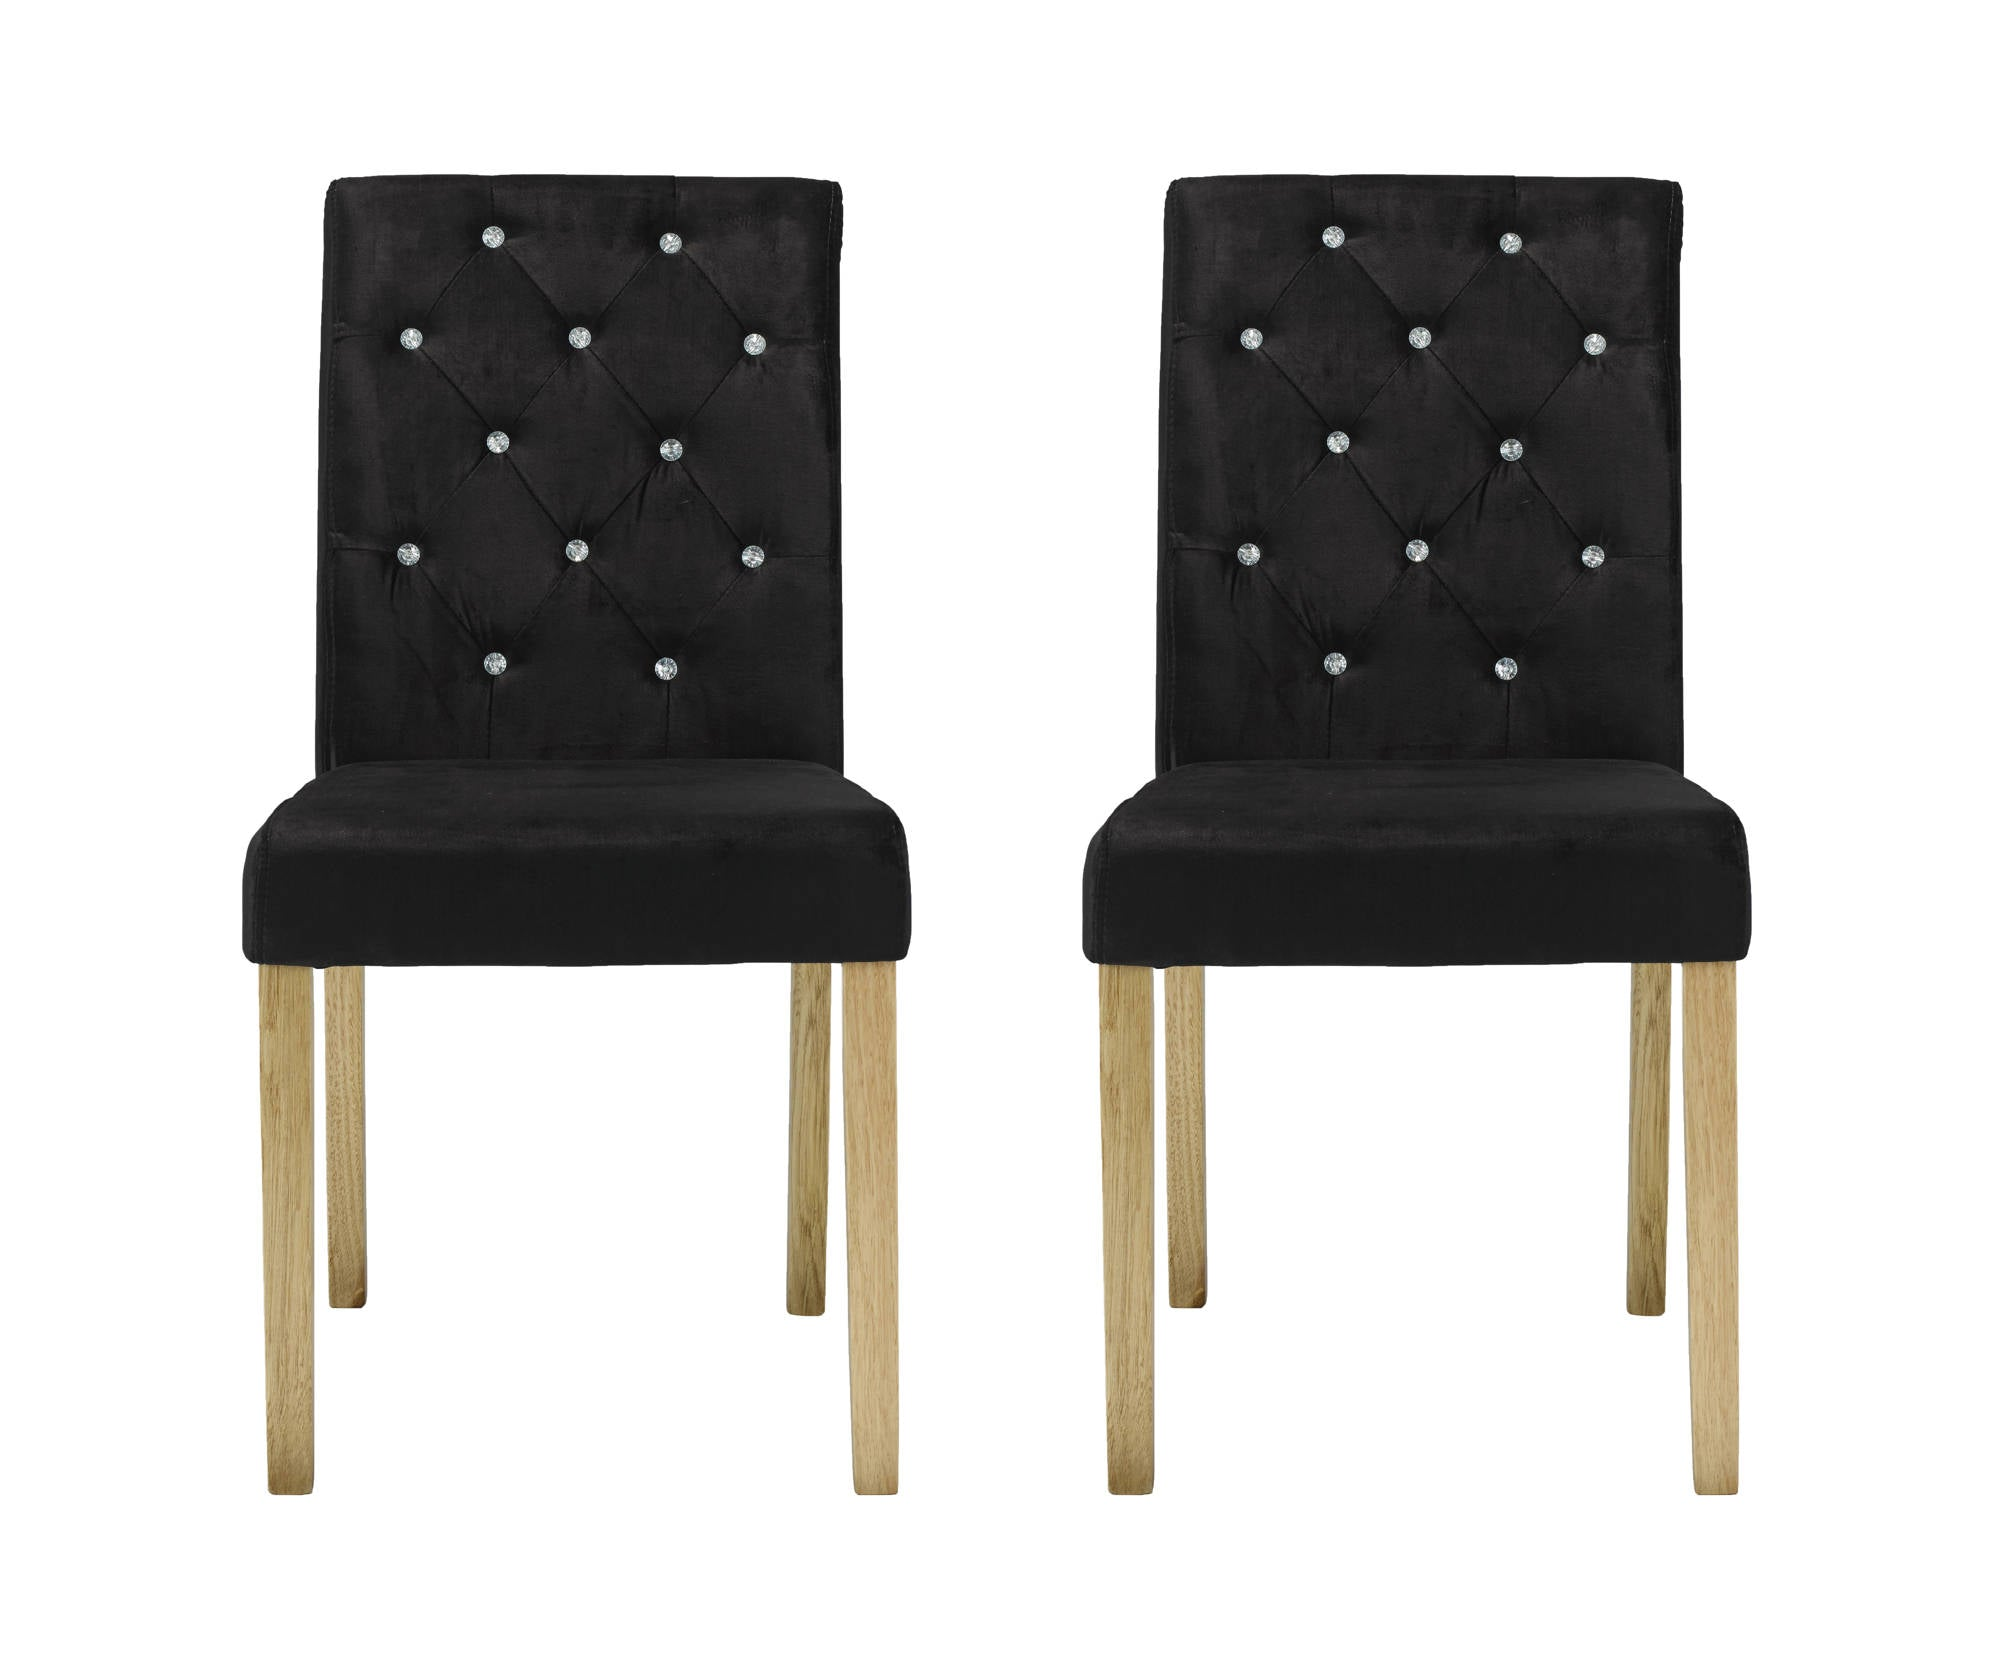 Chaillot Dining Chairs in Black - Ezzo